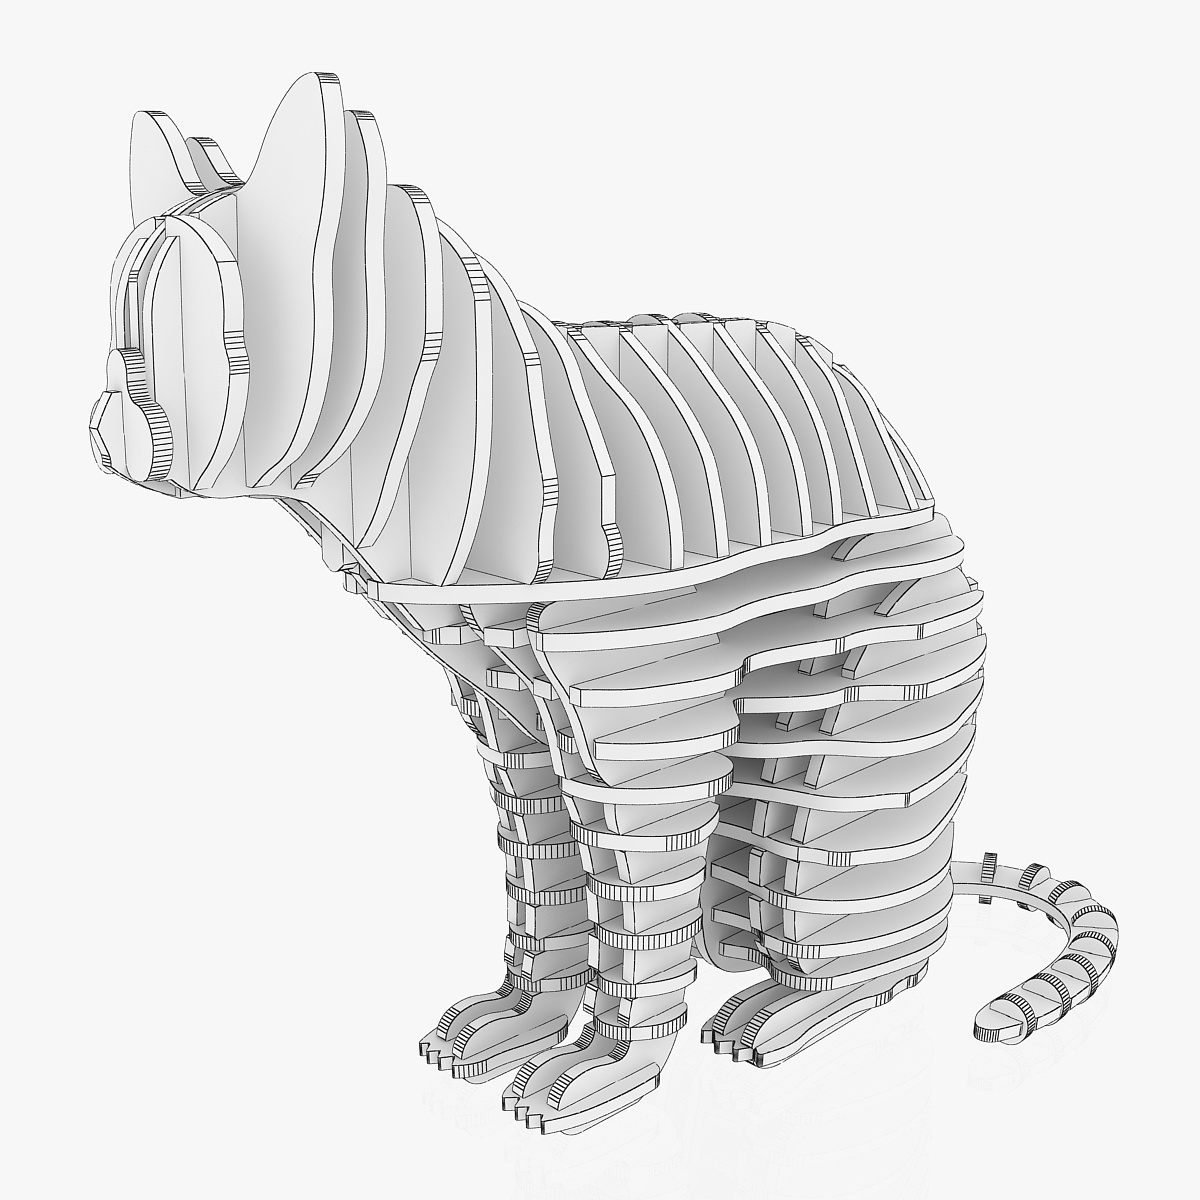 teka-teki kucing 1 3d model 3ds max dxf dwg fbx dae obj 223461